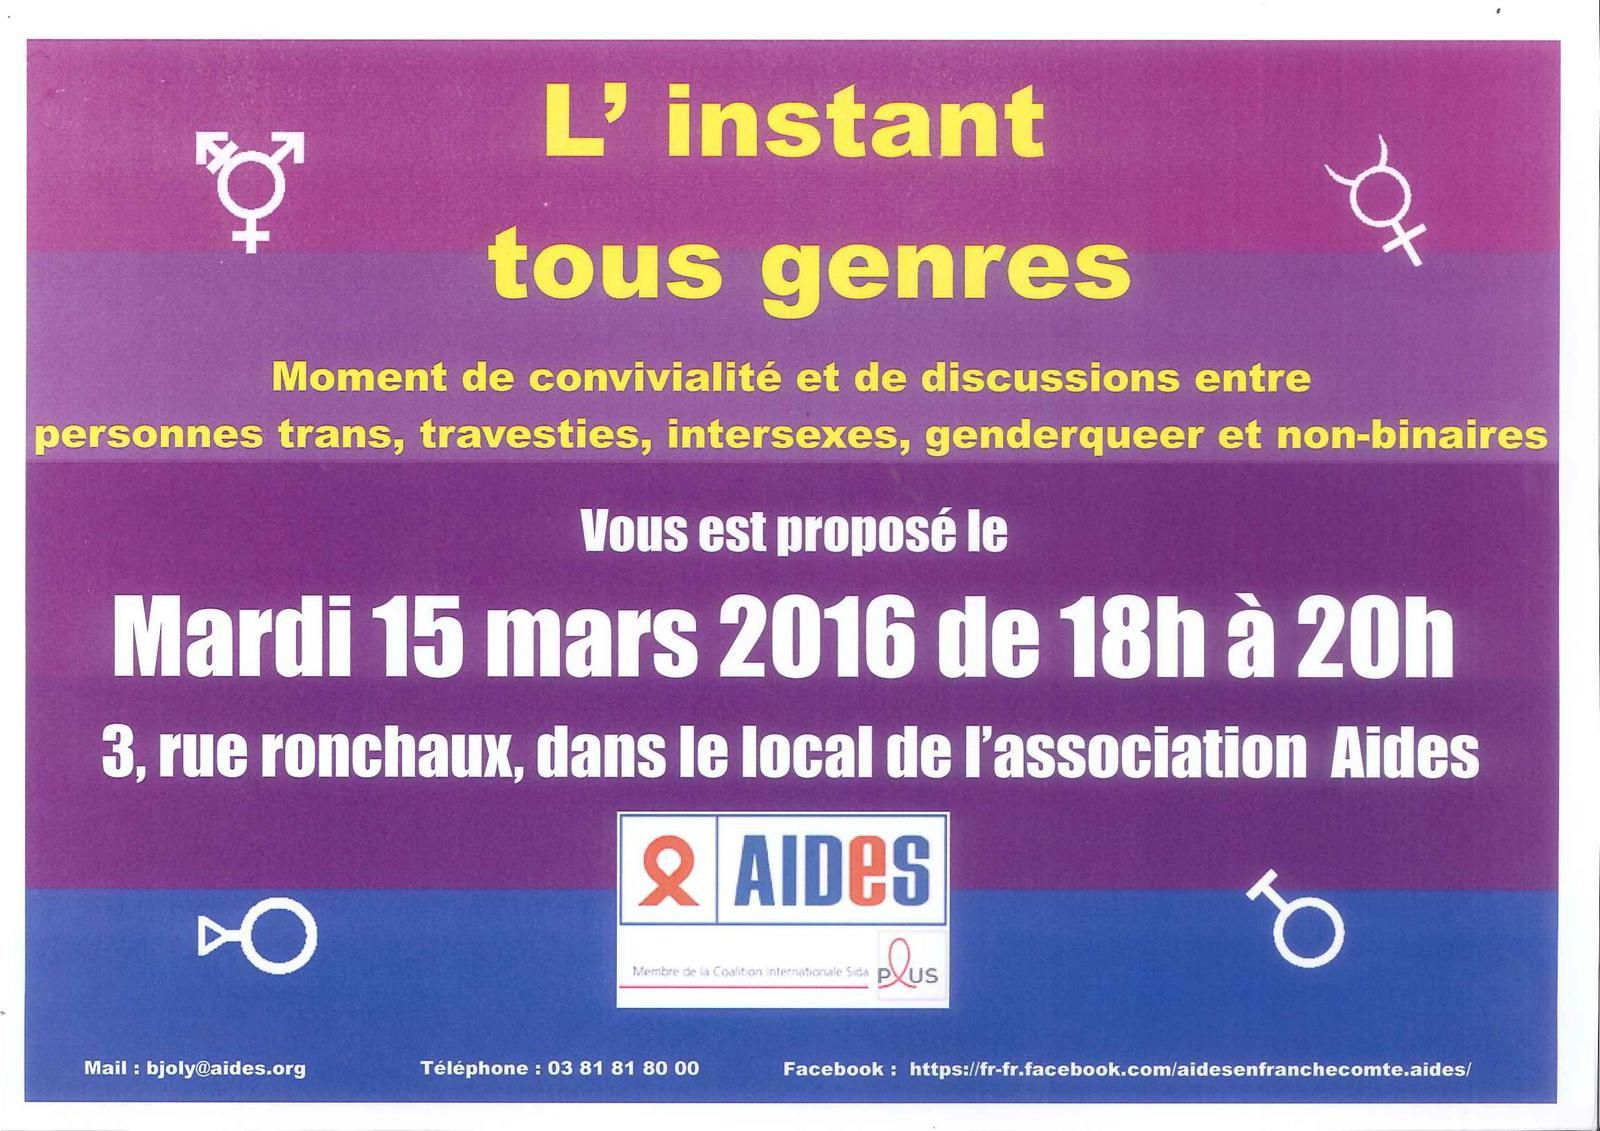 Instant tous genres 15 mars 2016